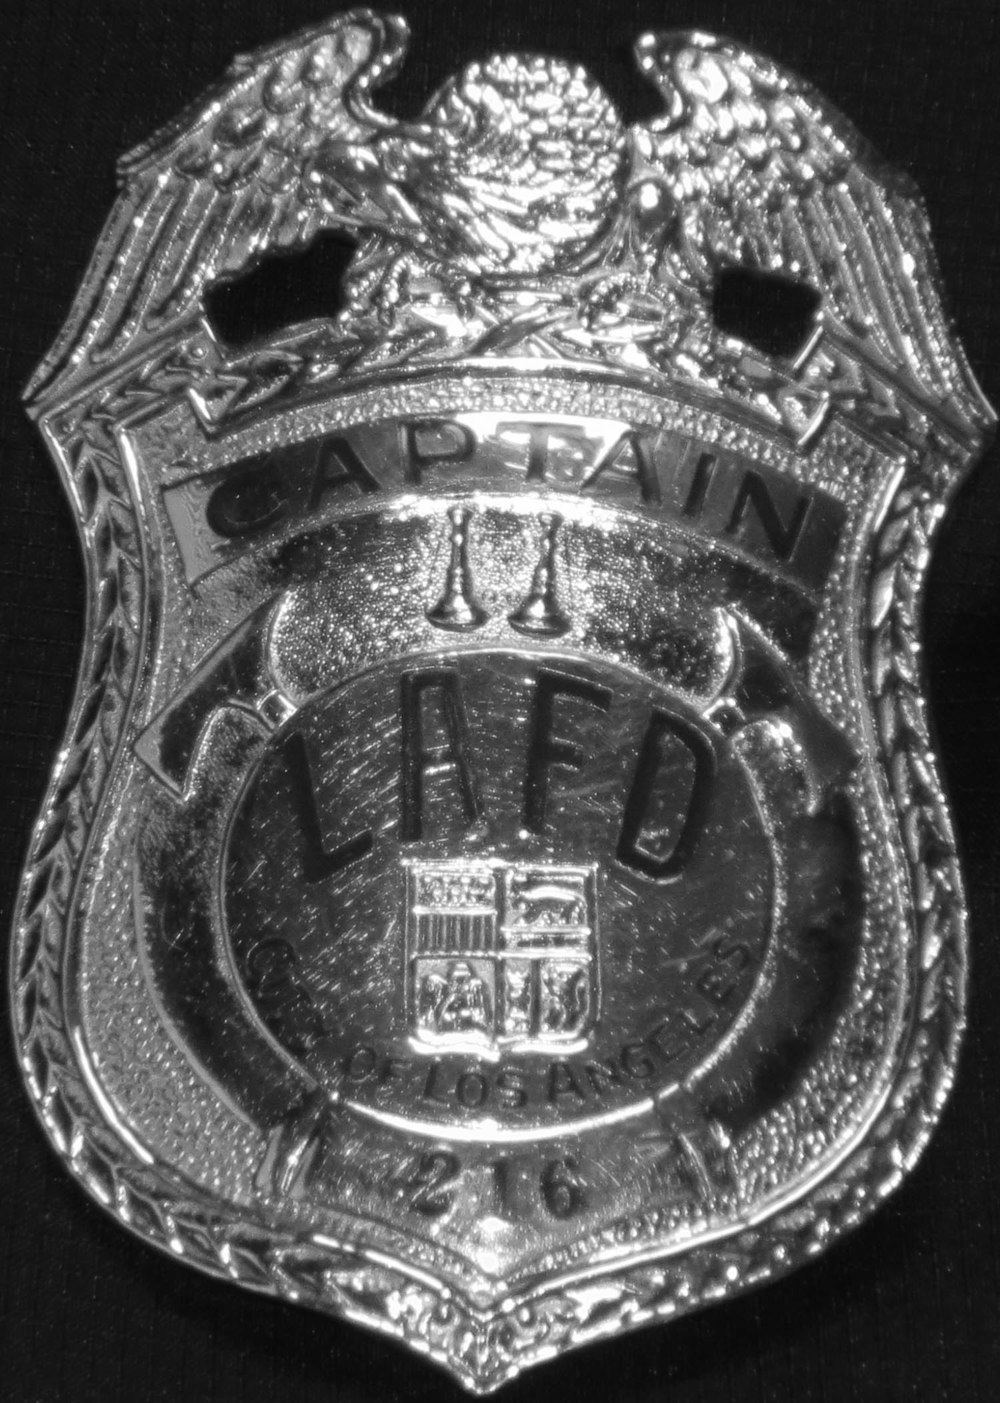 LAFD Badge, Photograph courtesy of the LAFD